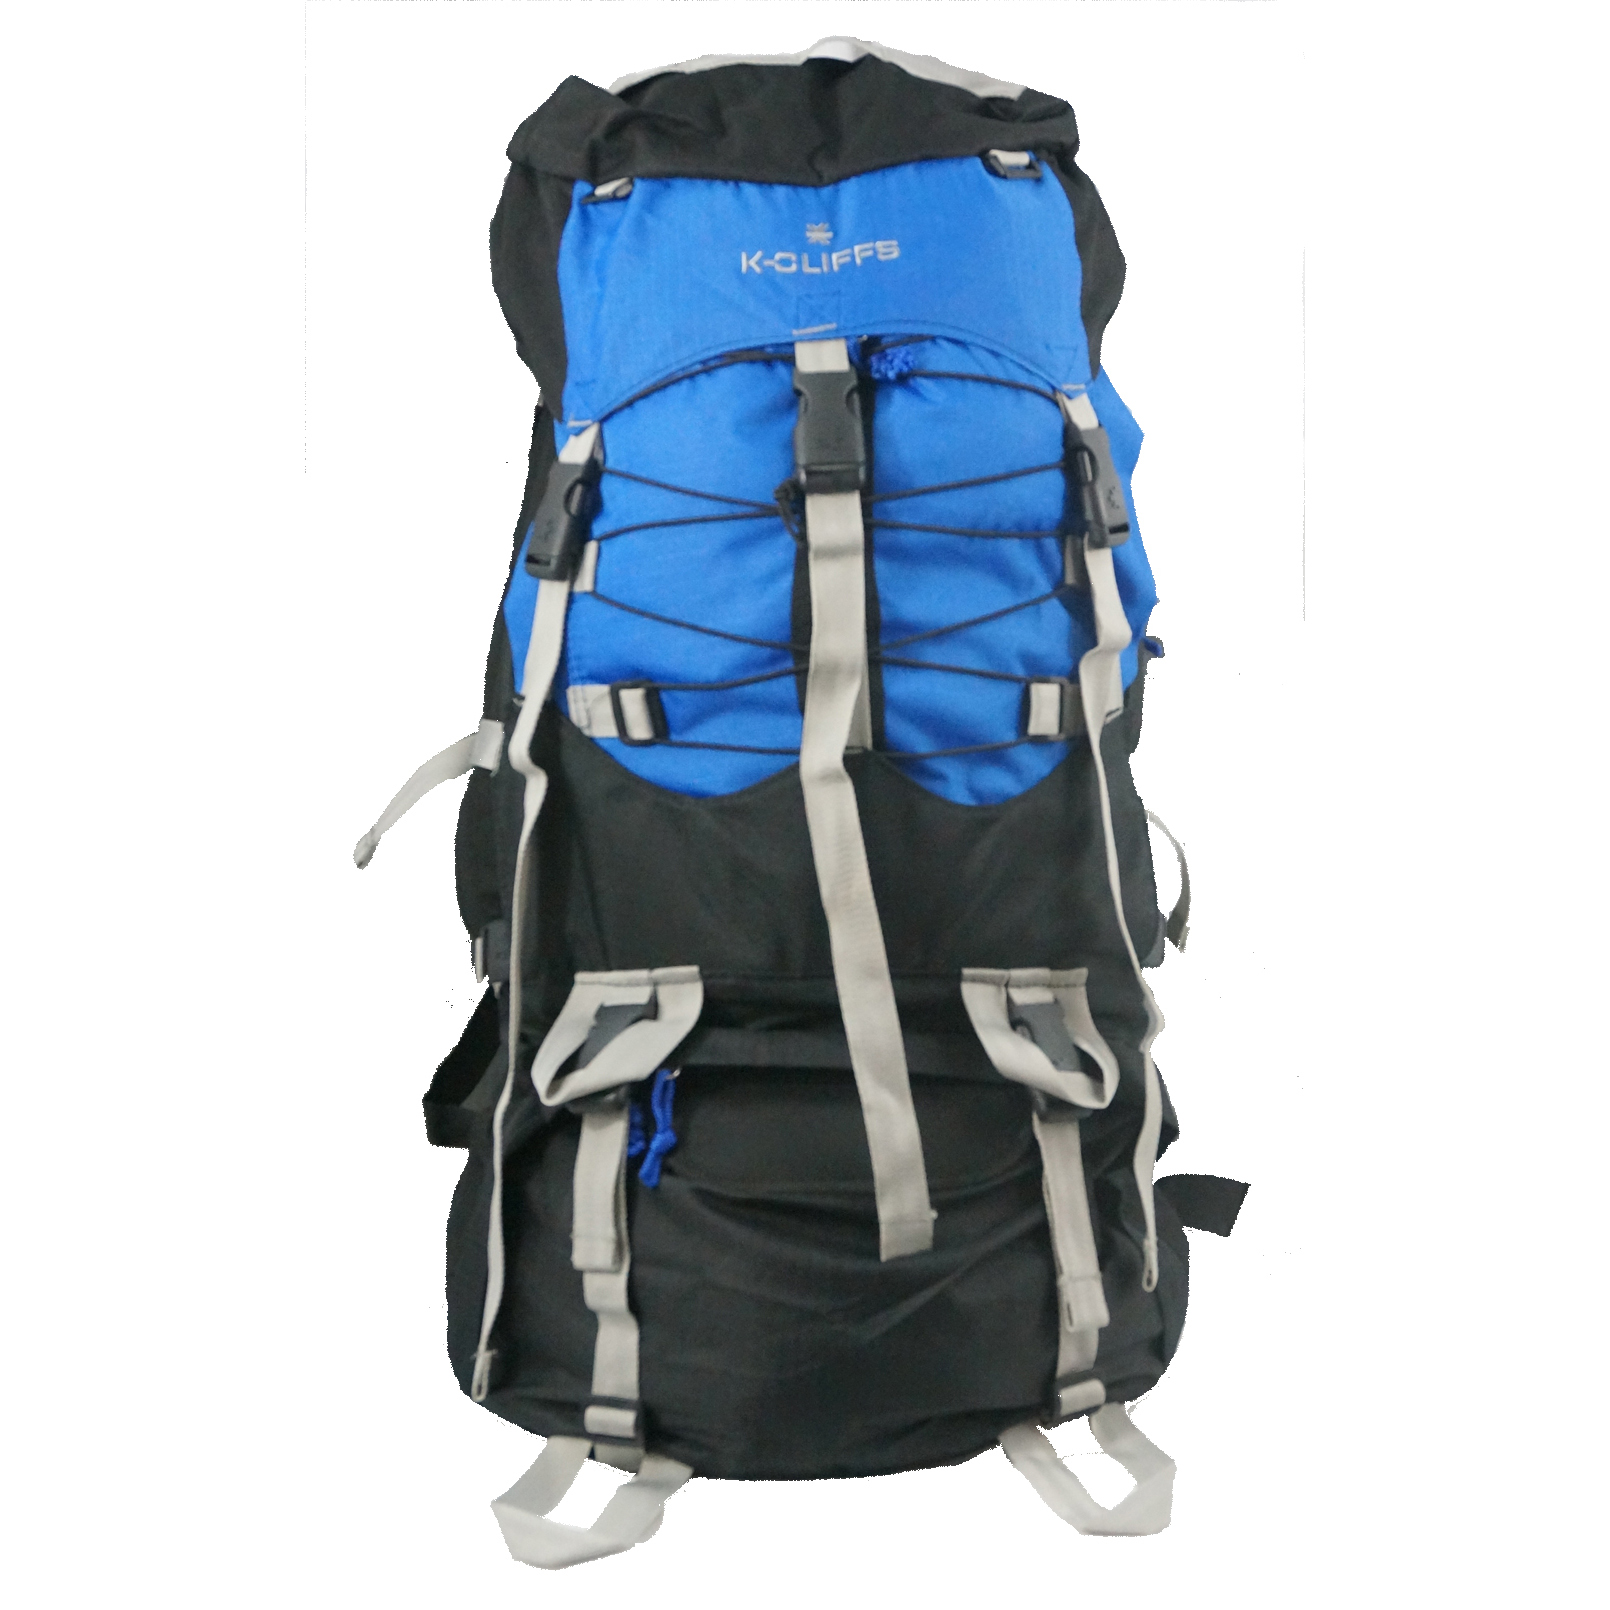 K-Cliffs Hiking Backpack Large Scout Camping Backpack Outdoor Travel Bag w Rain Cover Royal Blue by K-Cliffs